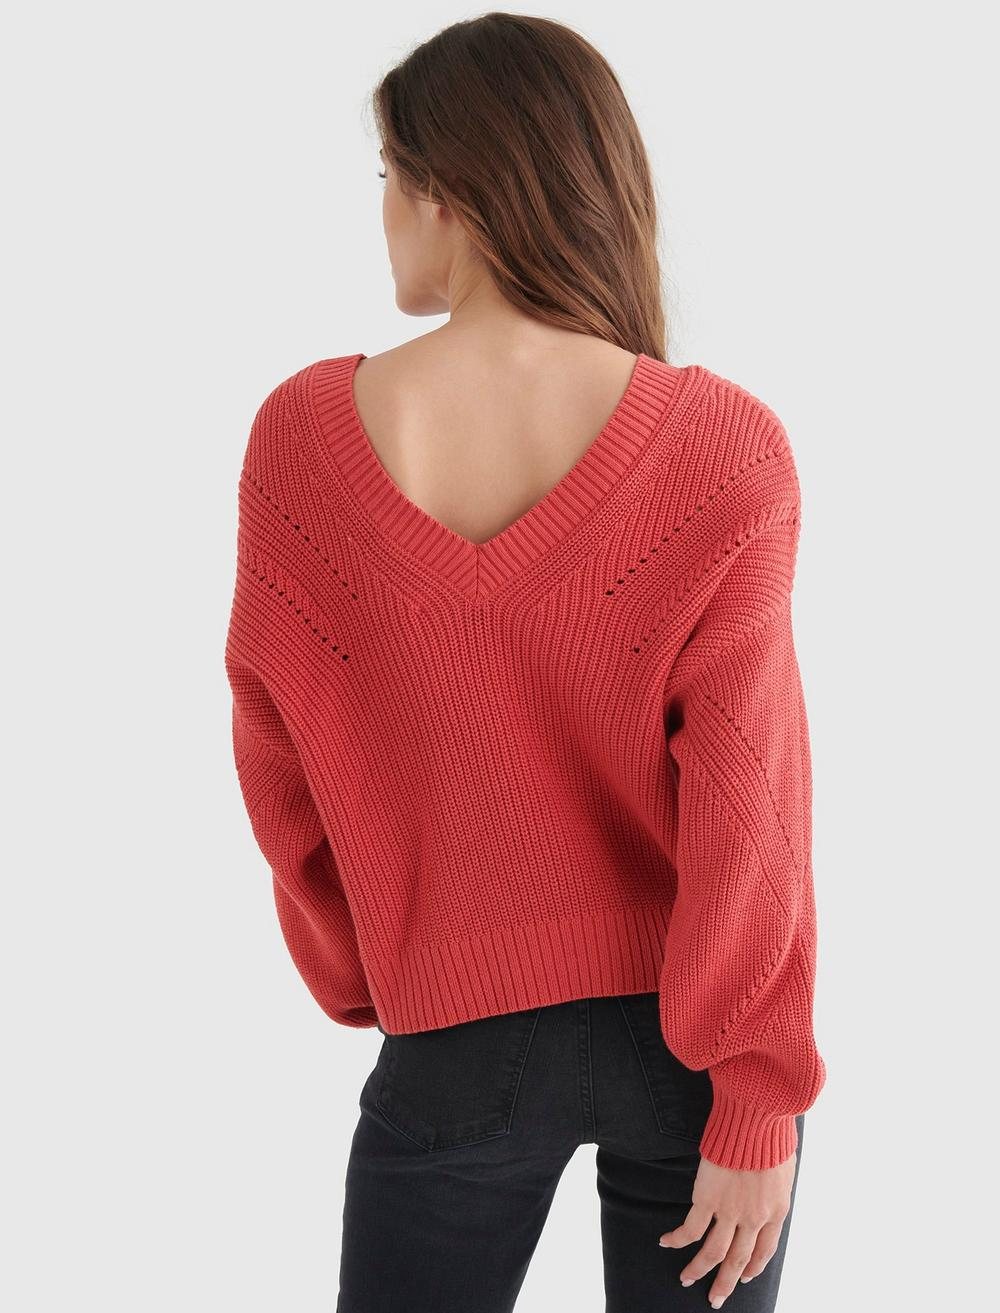 CROPPED RIB-KNIT PULLOVER REVERSIBLE SWEATER, image 5